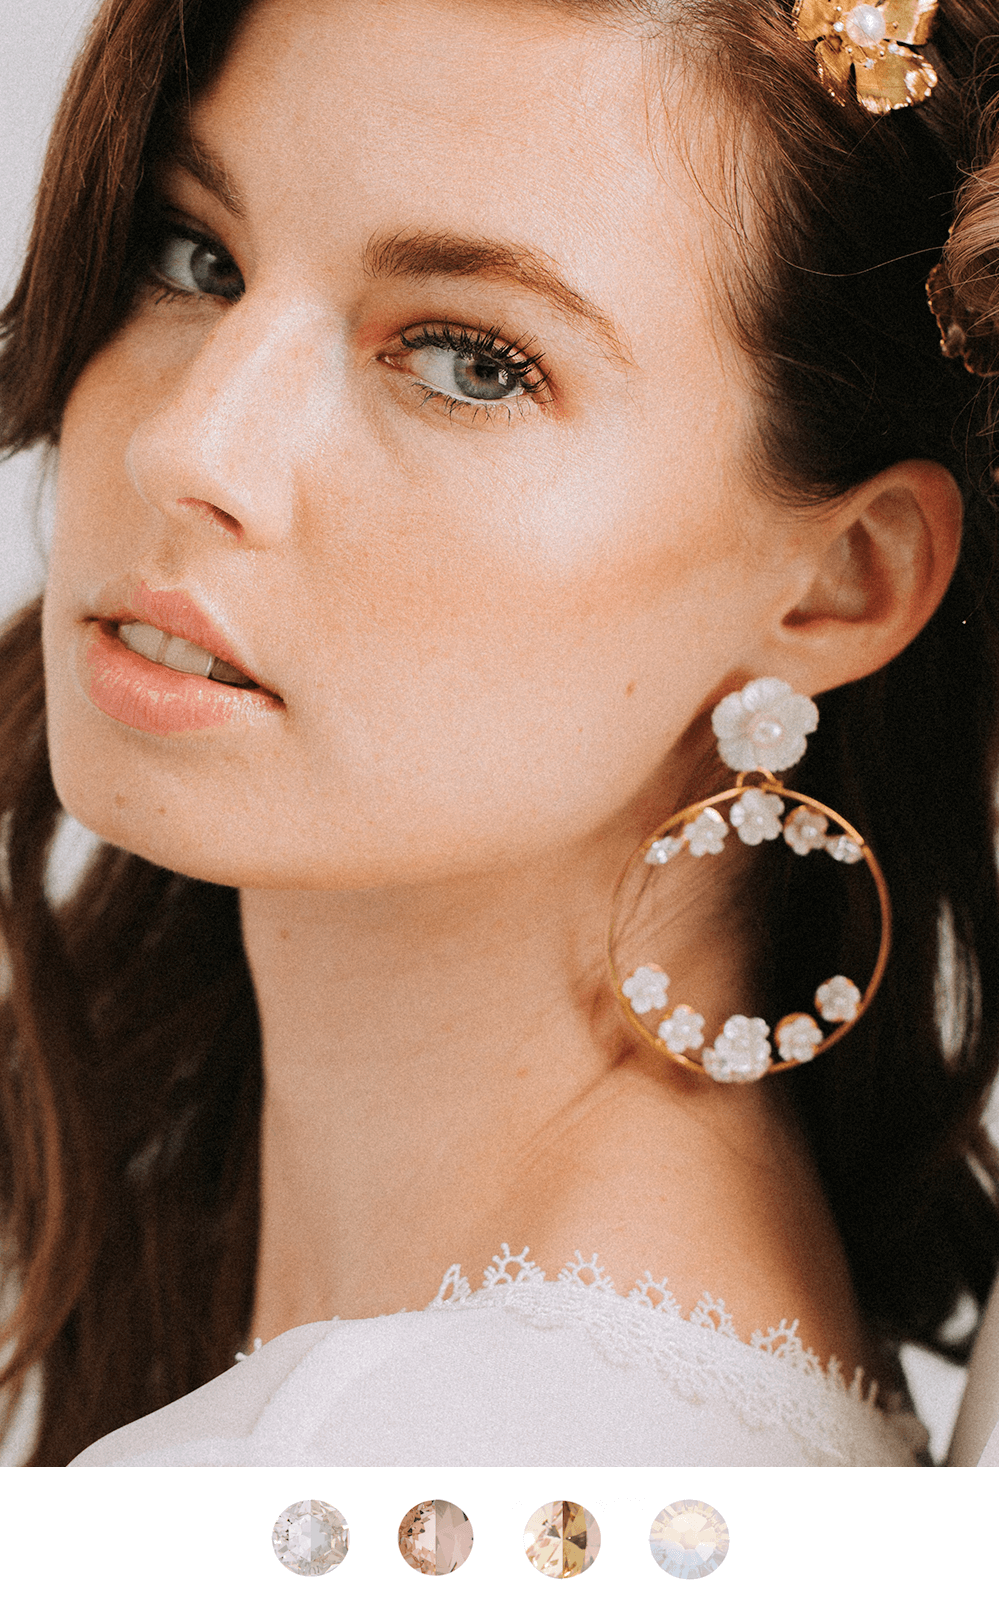 Vivienne Earrings Earrings Bekah Anne Accessories